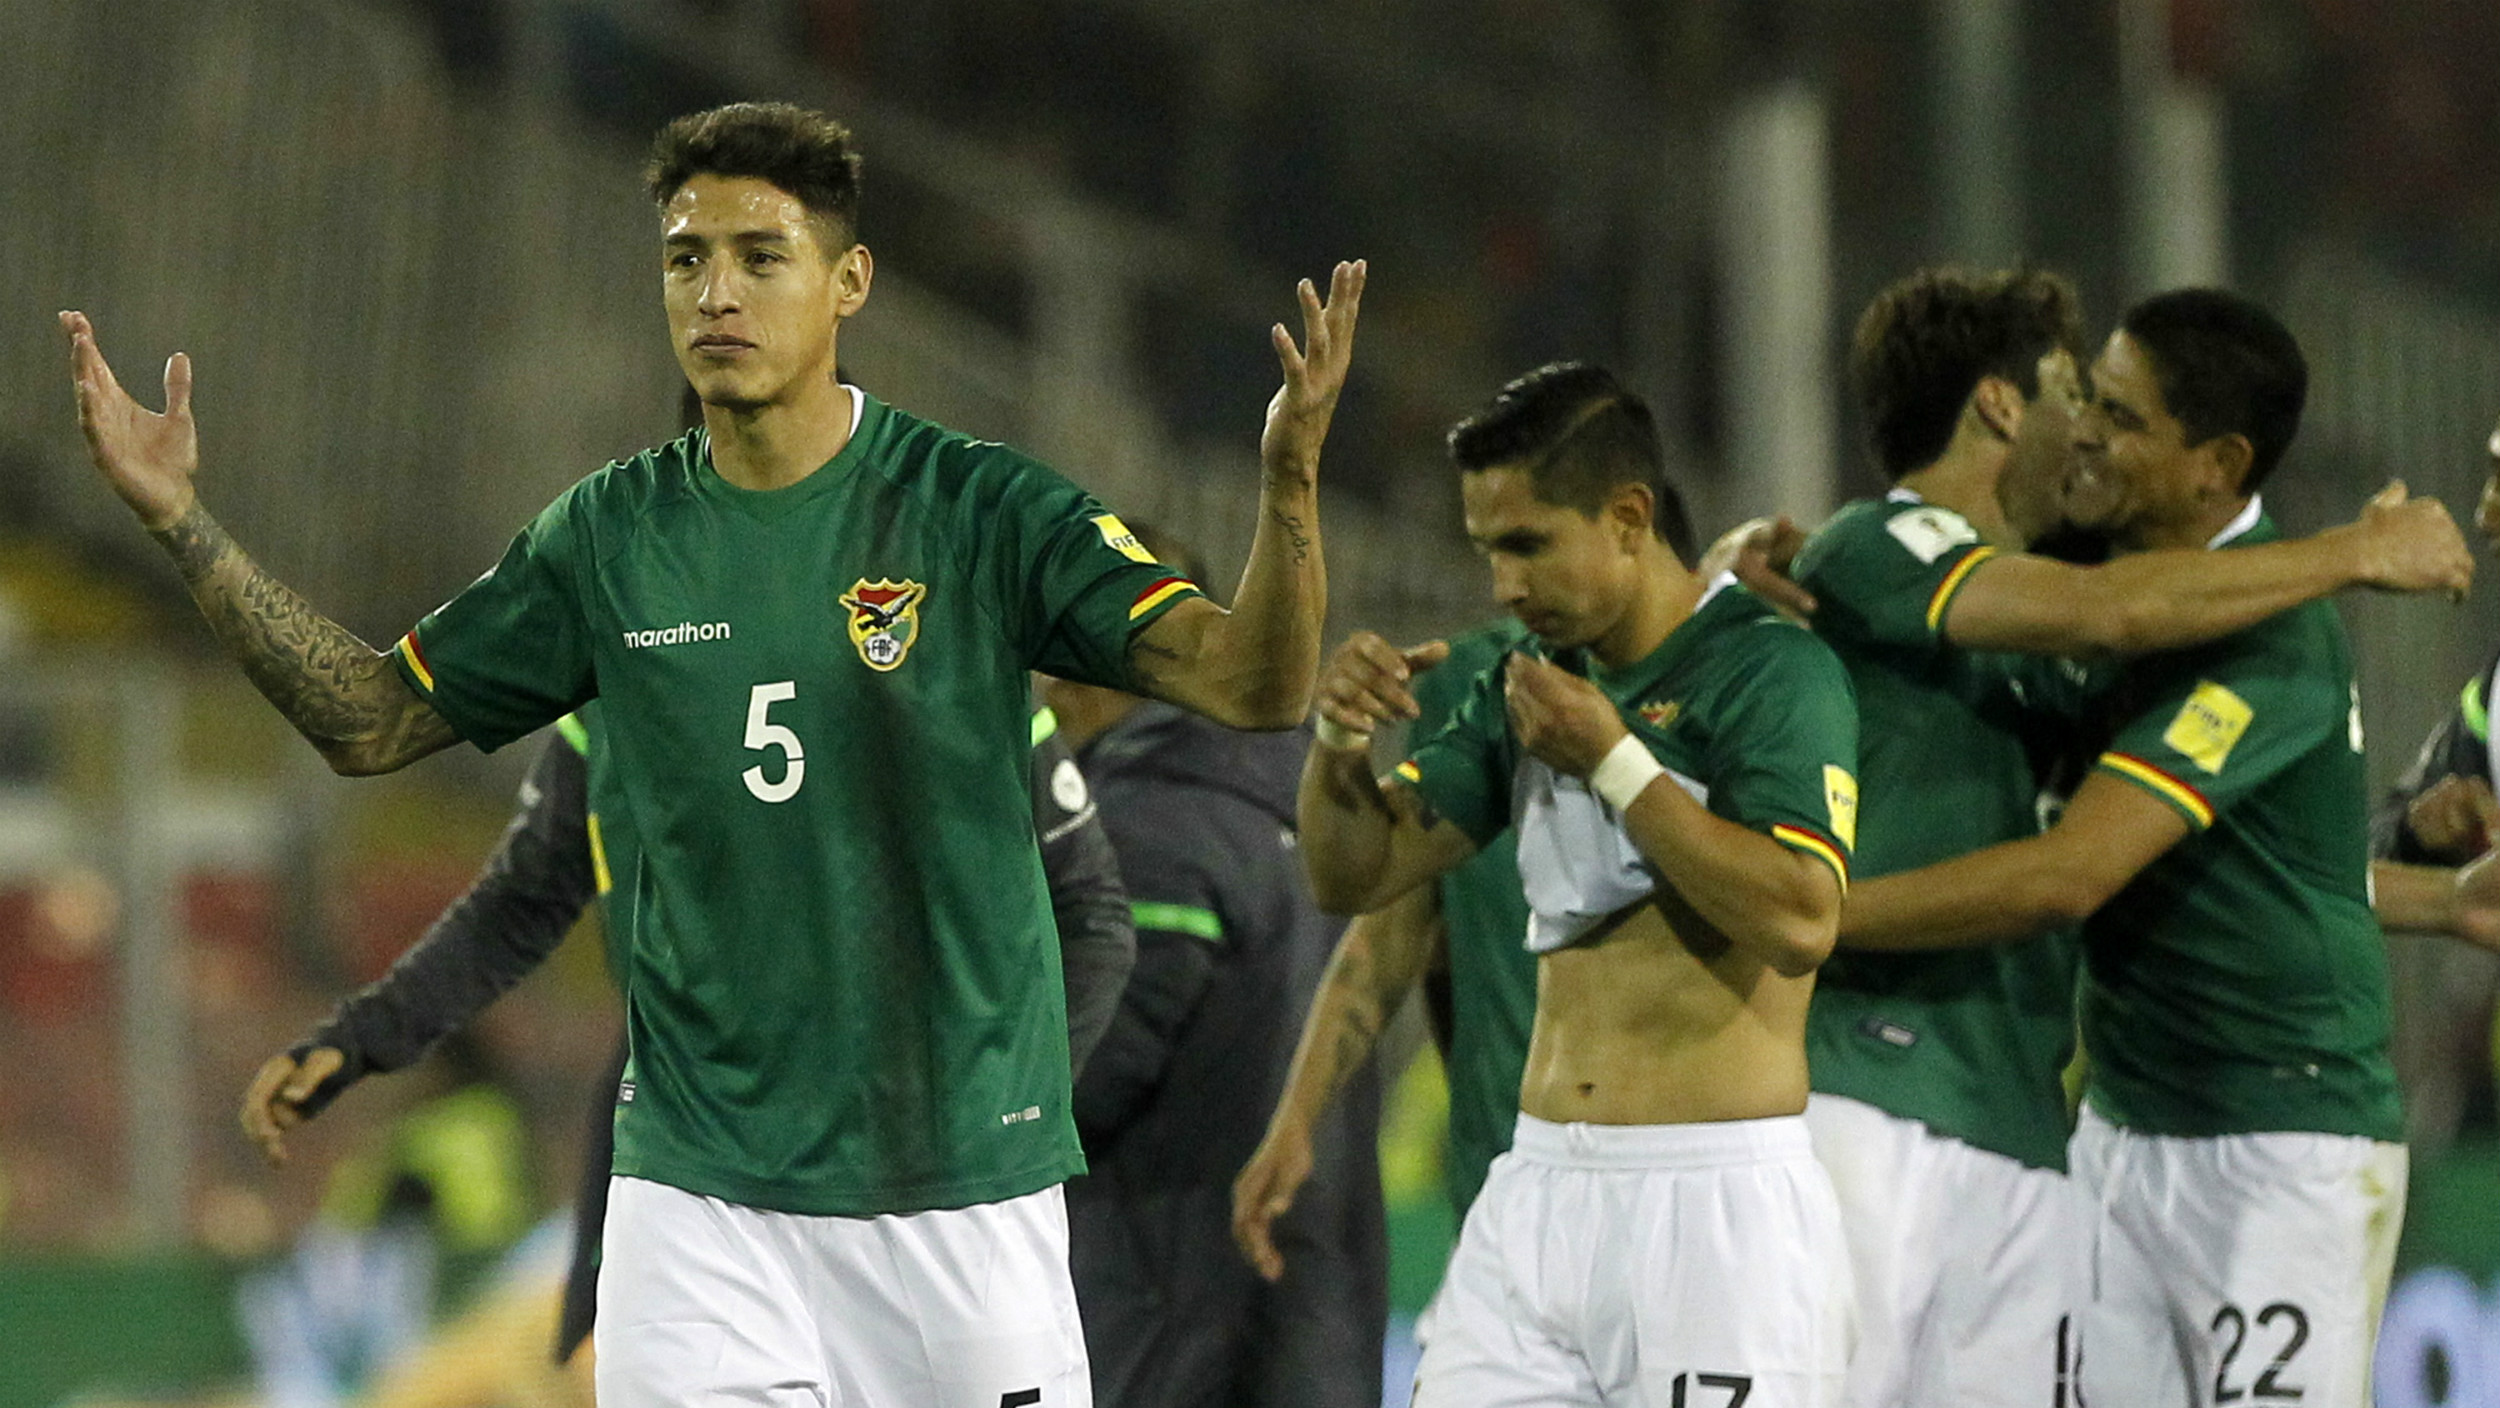 Bolivia stripped of World Cup qualifying points by Federation Internationale de Football Association